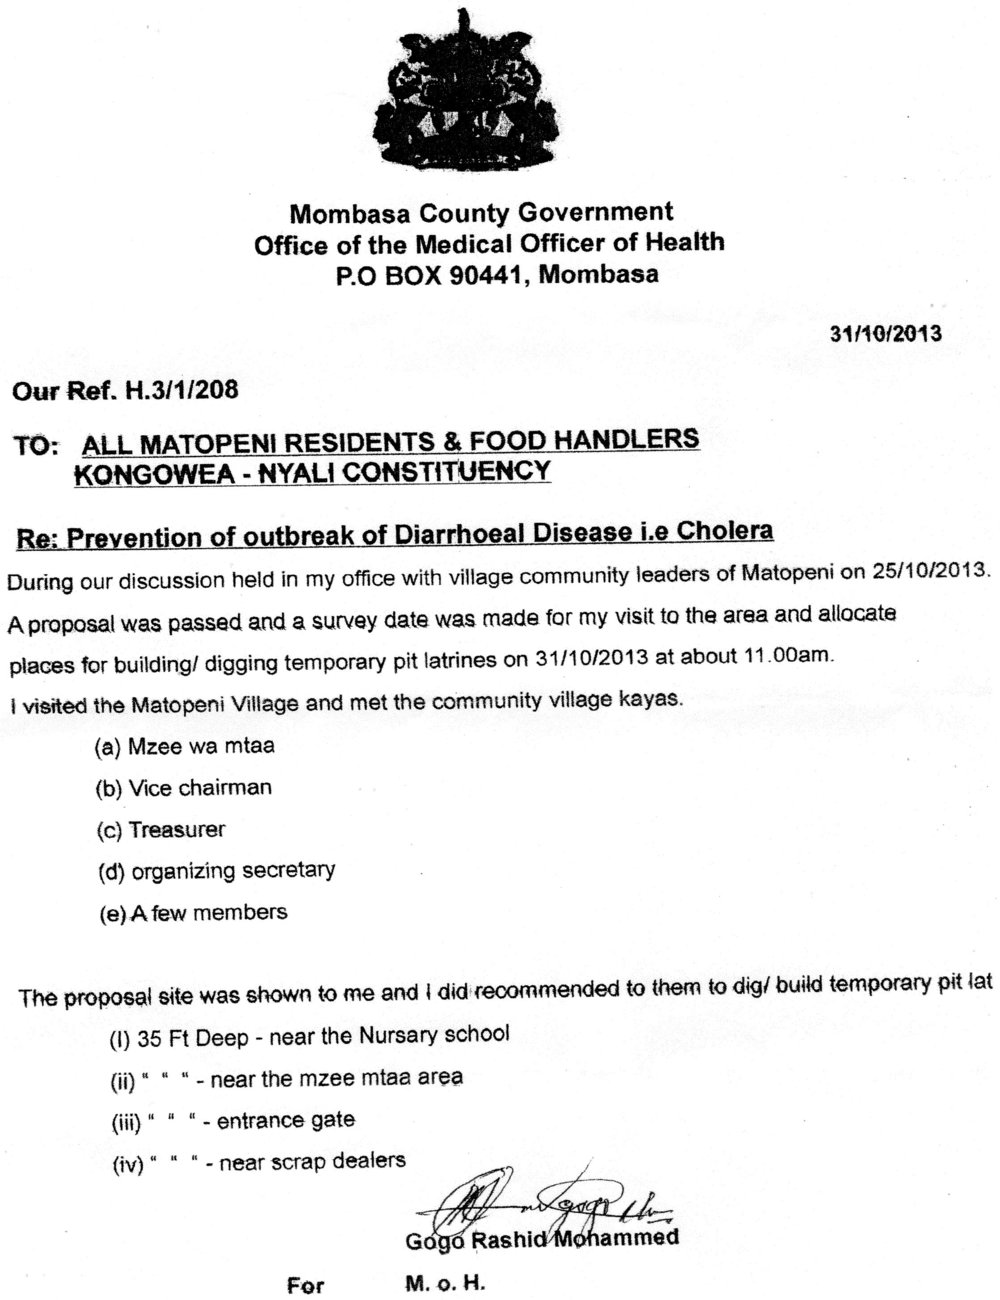 A copy of the letter from the County health authority